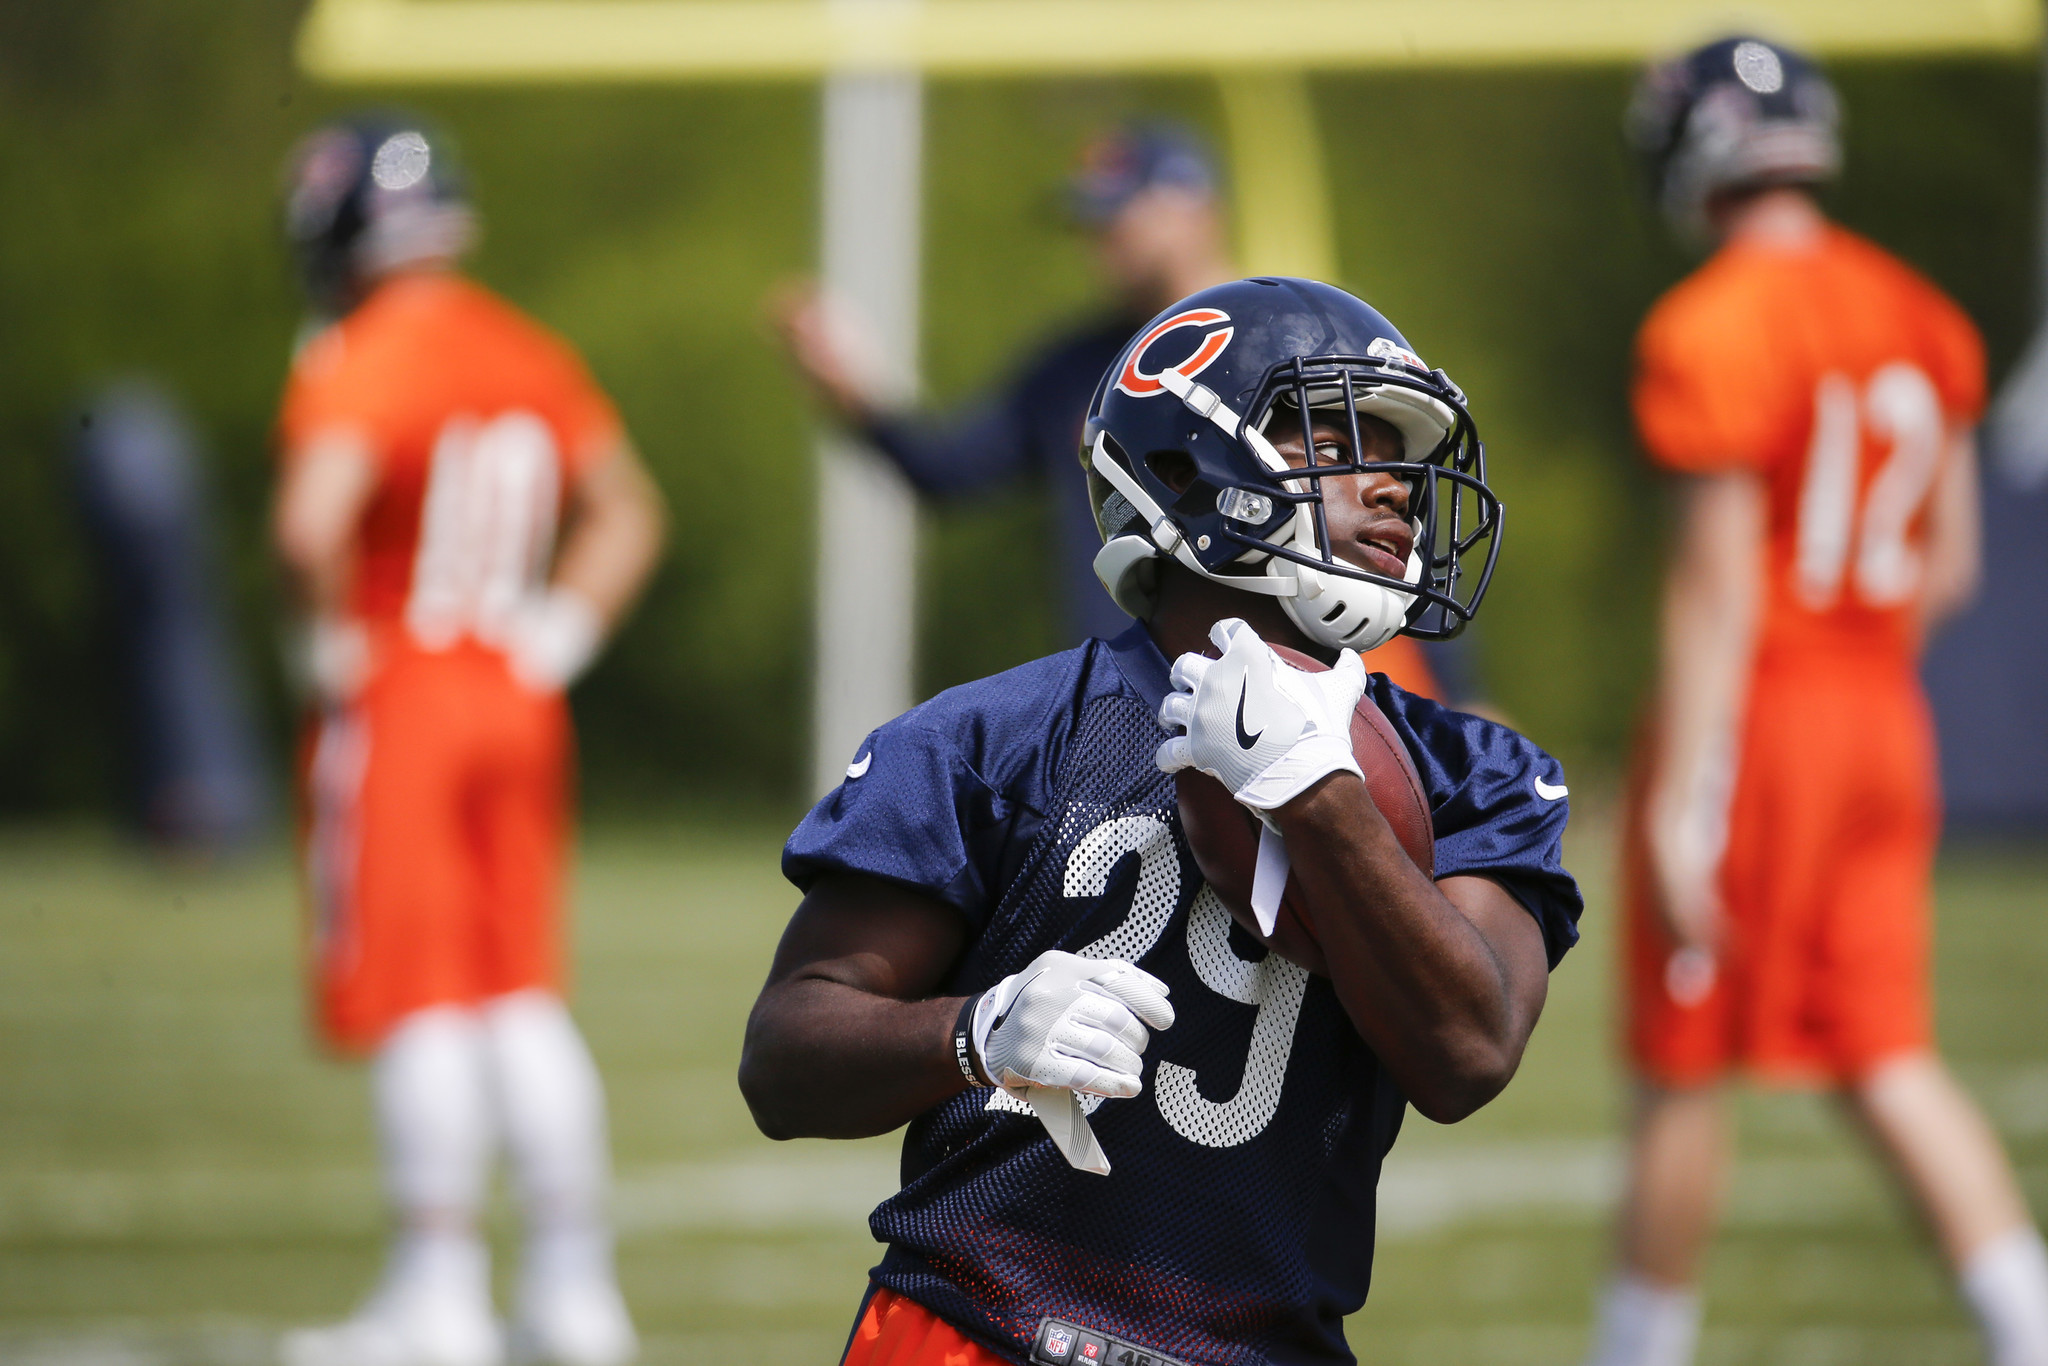 Ct-bears-tarik-cohen-what-we-learned-spt-0803-20170802